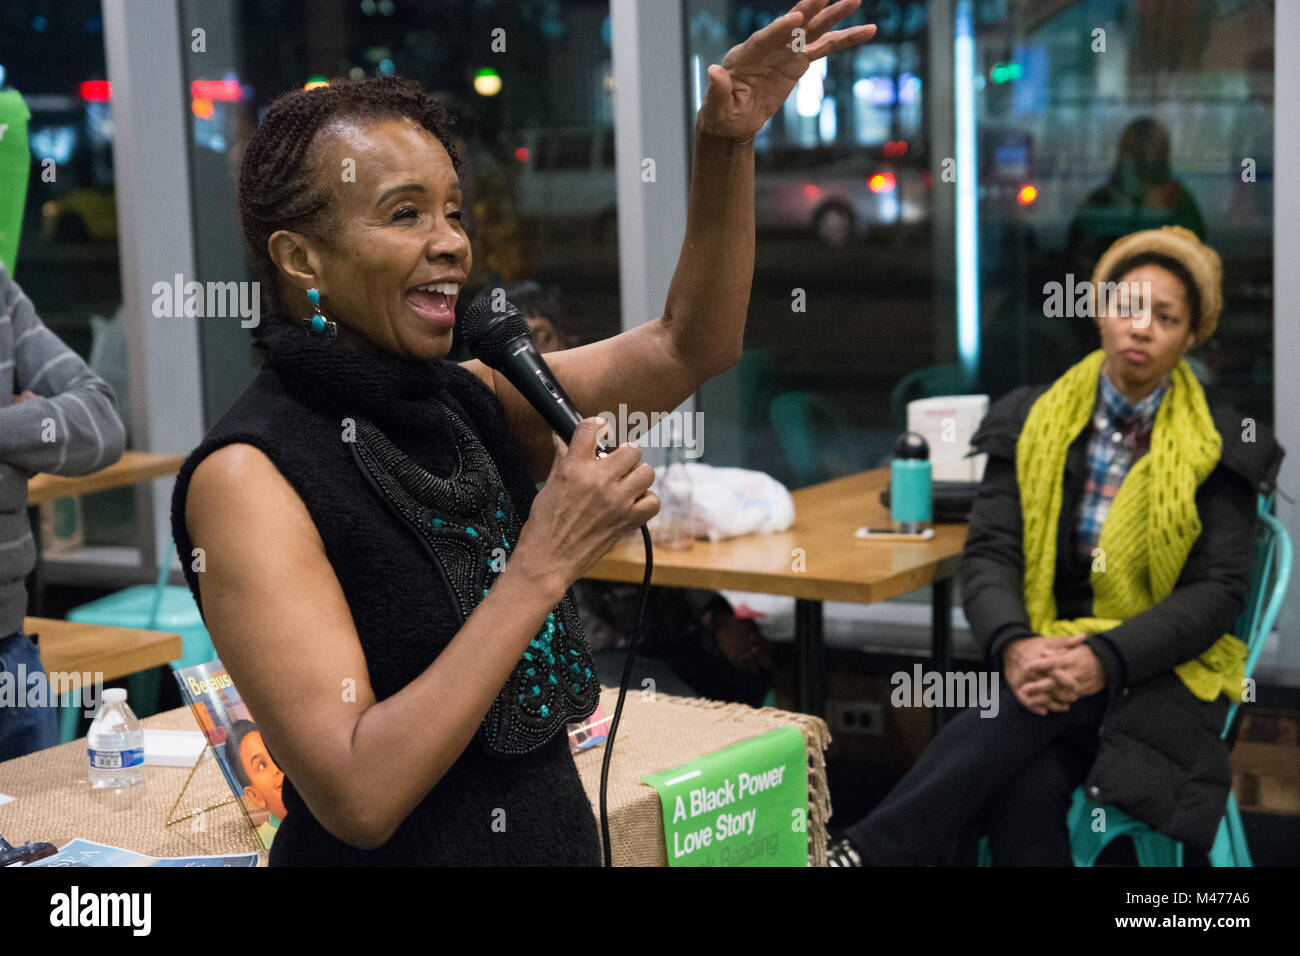 New York, USA. 13th February, 2018. Ms. Smalls talks about African-American history and children's literature. - Stock Image